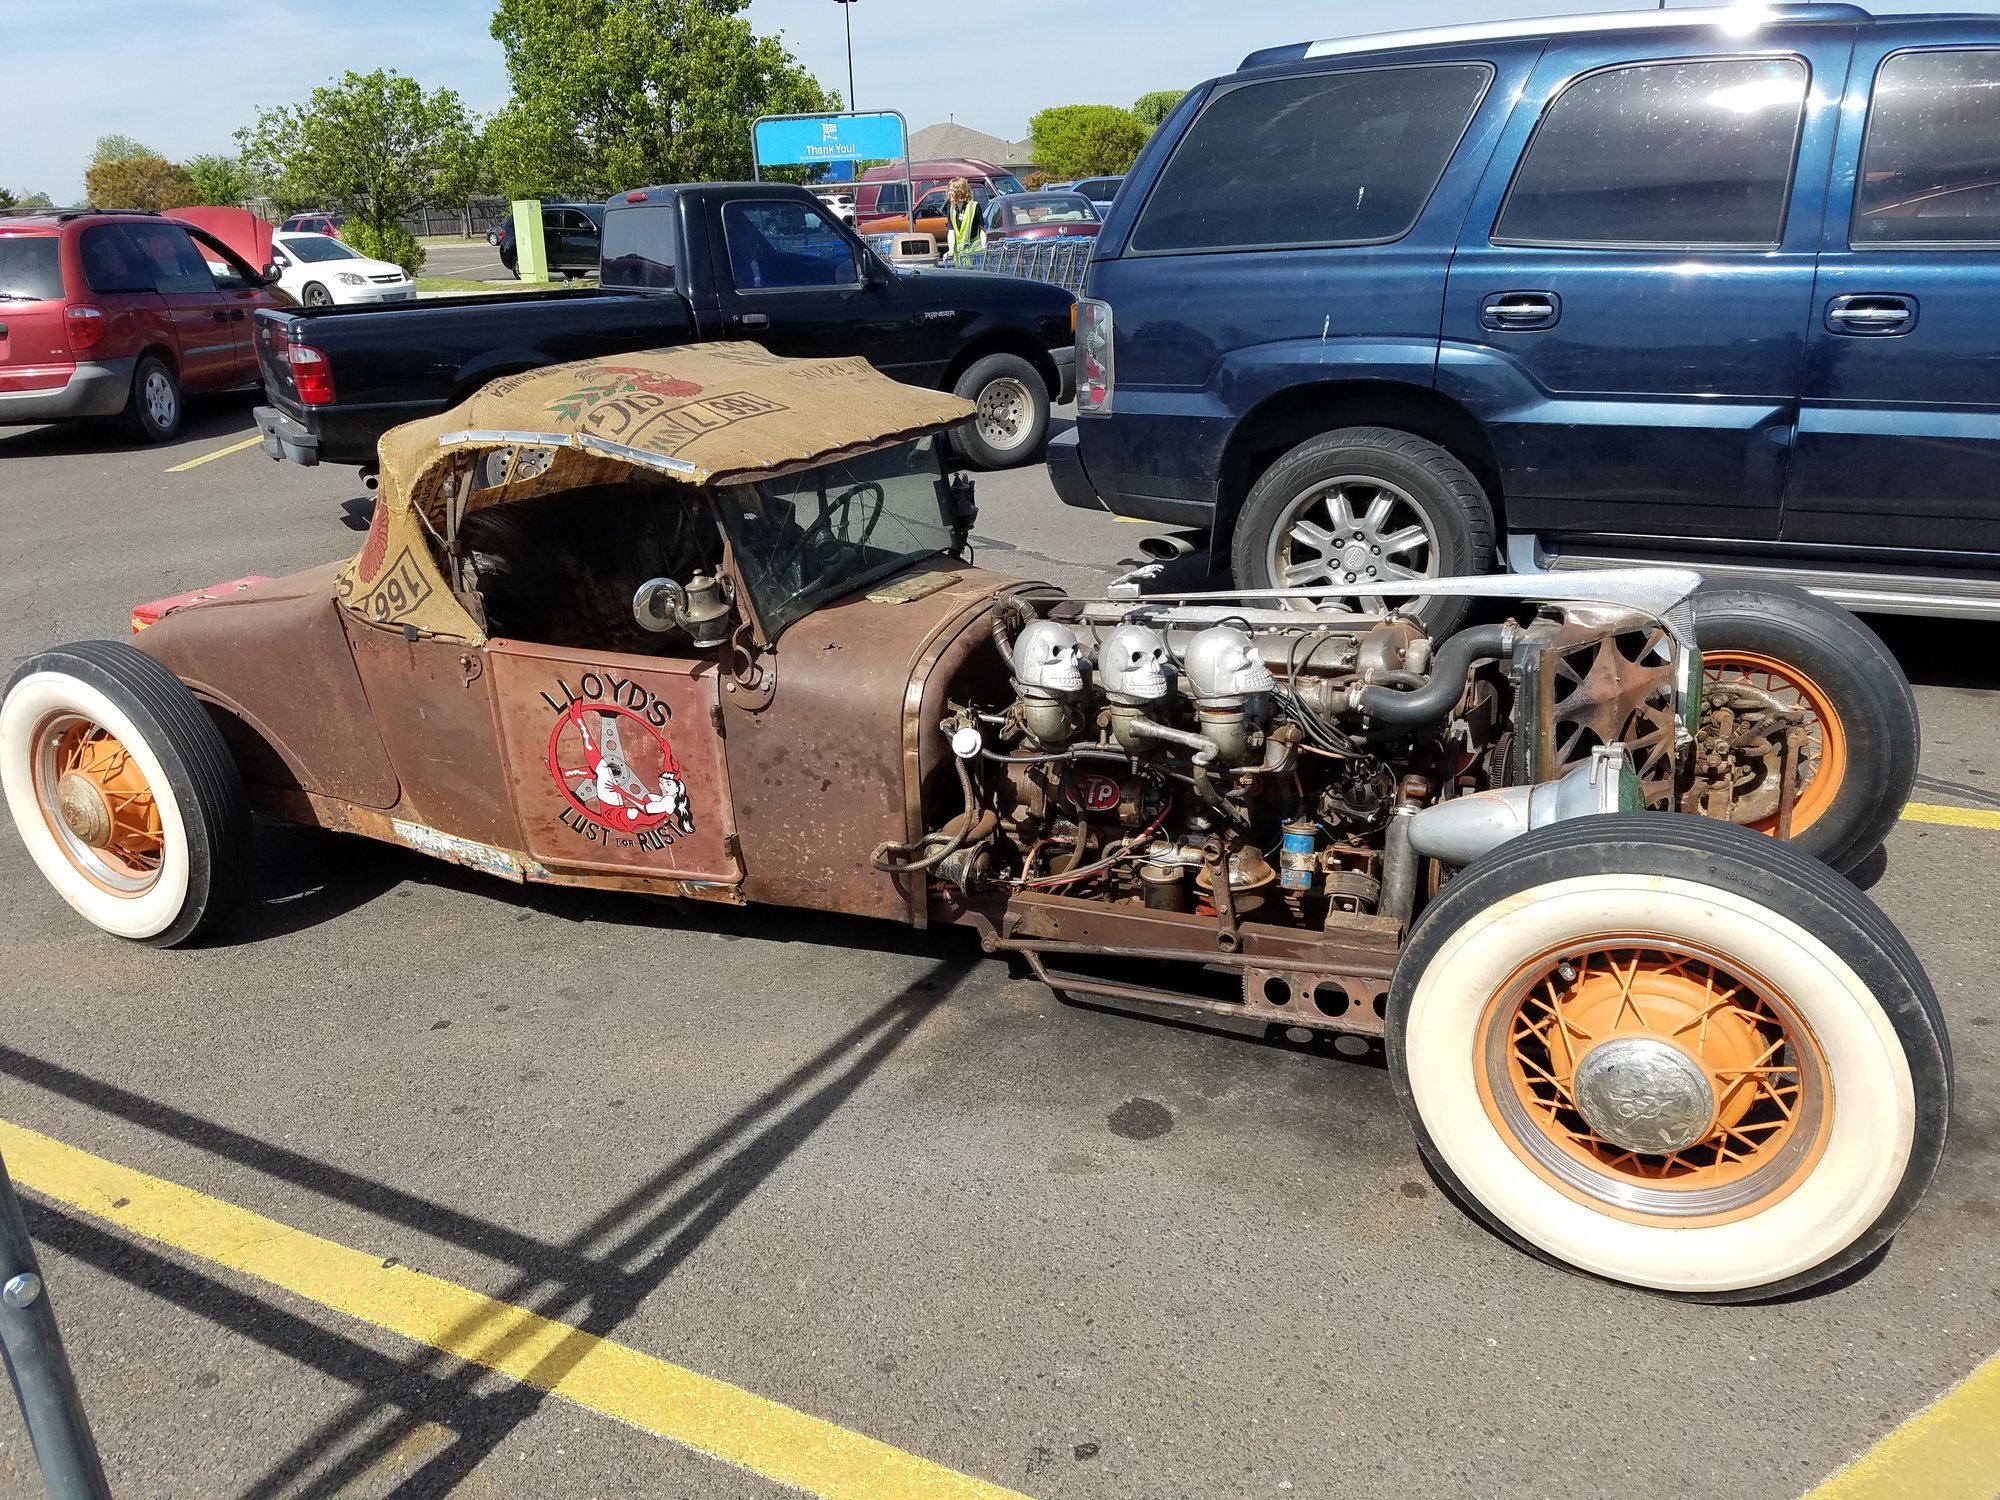 Lloyds lust for rust rat rod polycount i publicscrutiny Choice Image